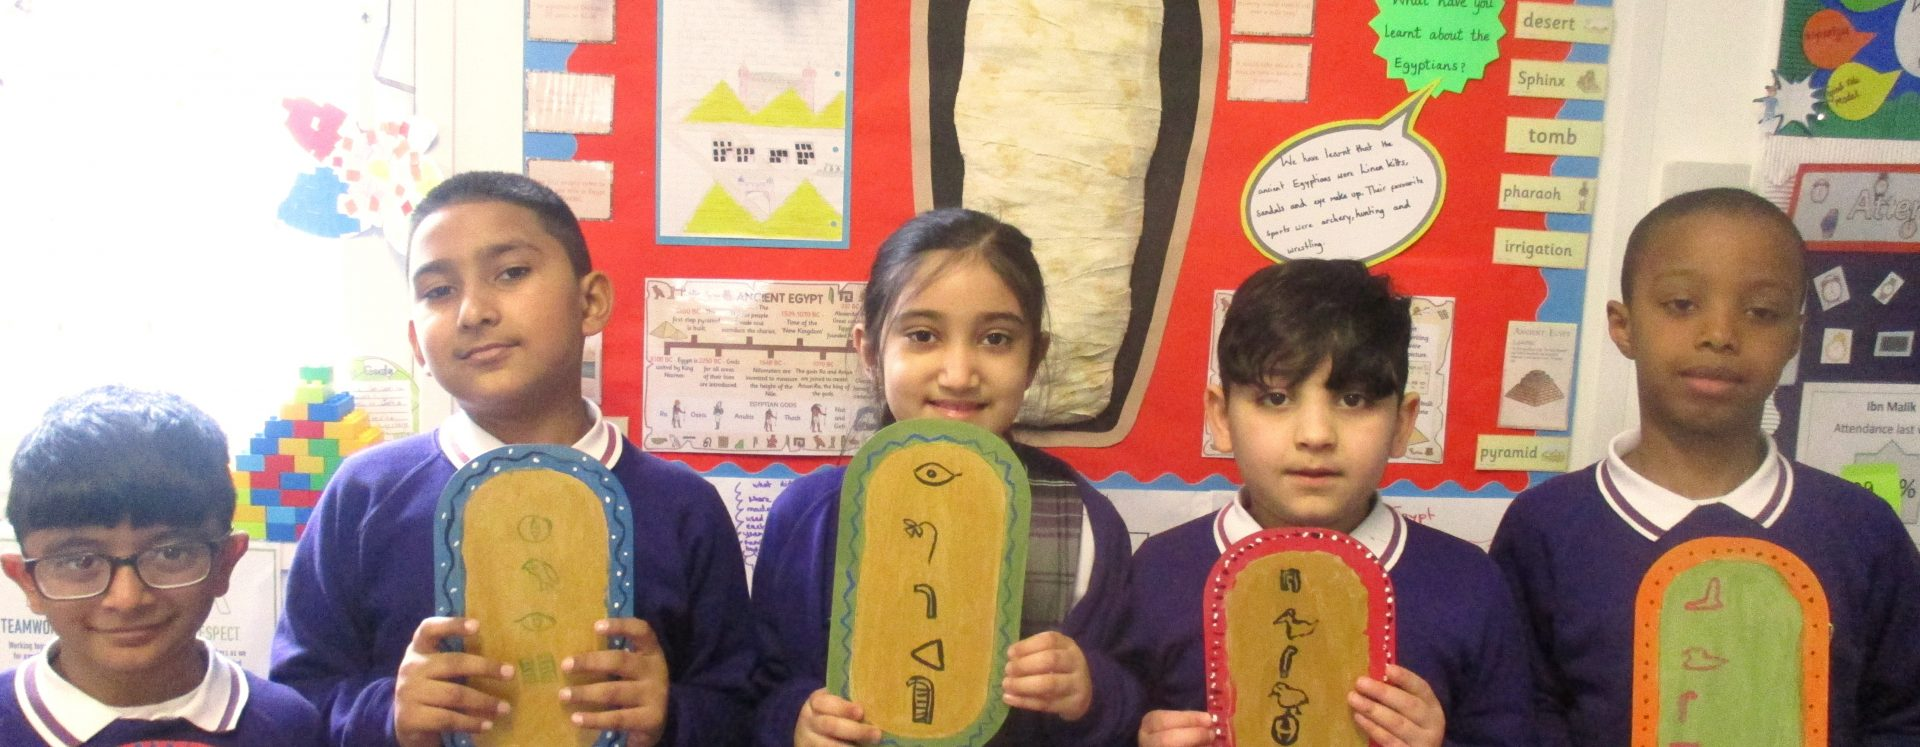 Pupils have a 'pharaoh' time in Egypt workshop